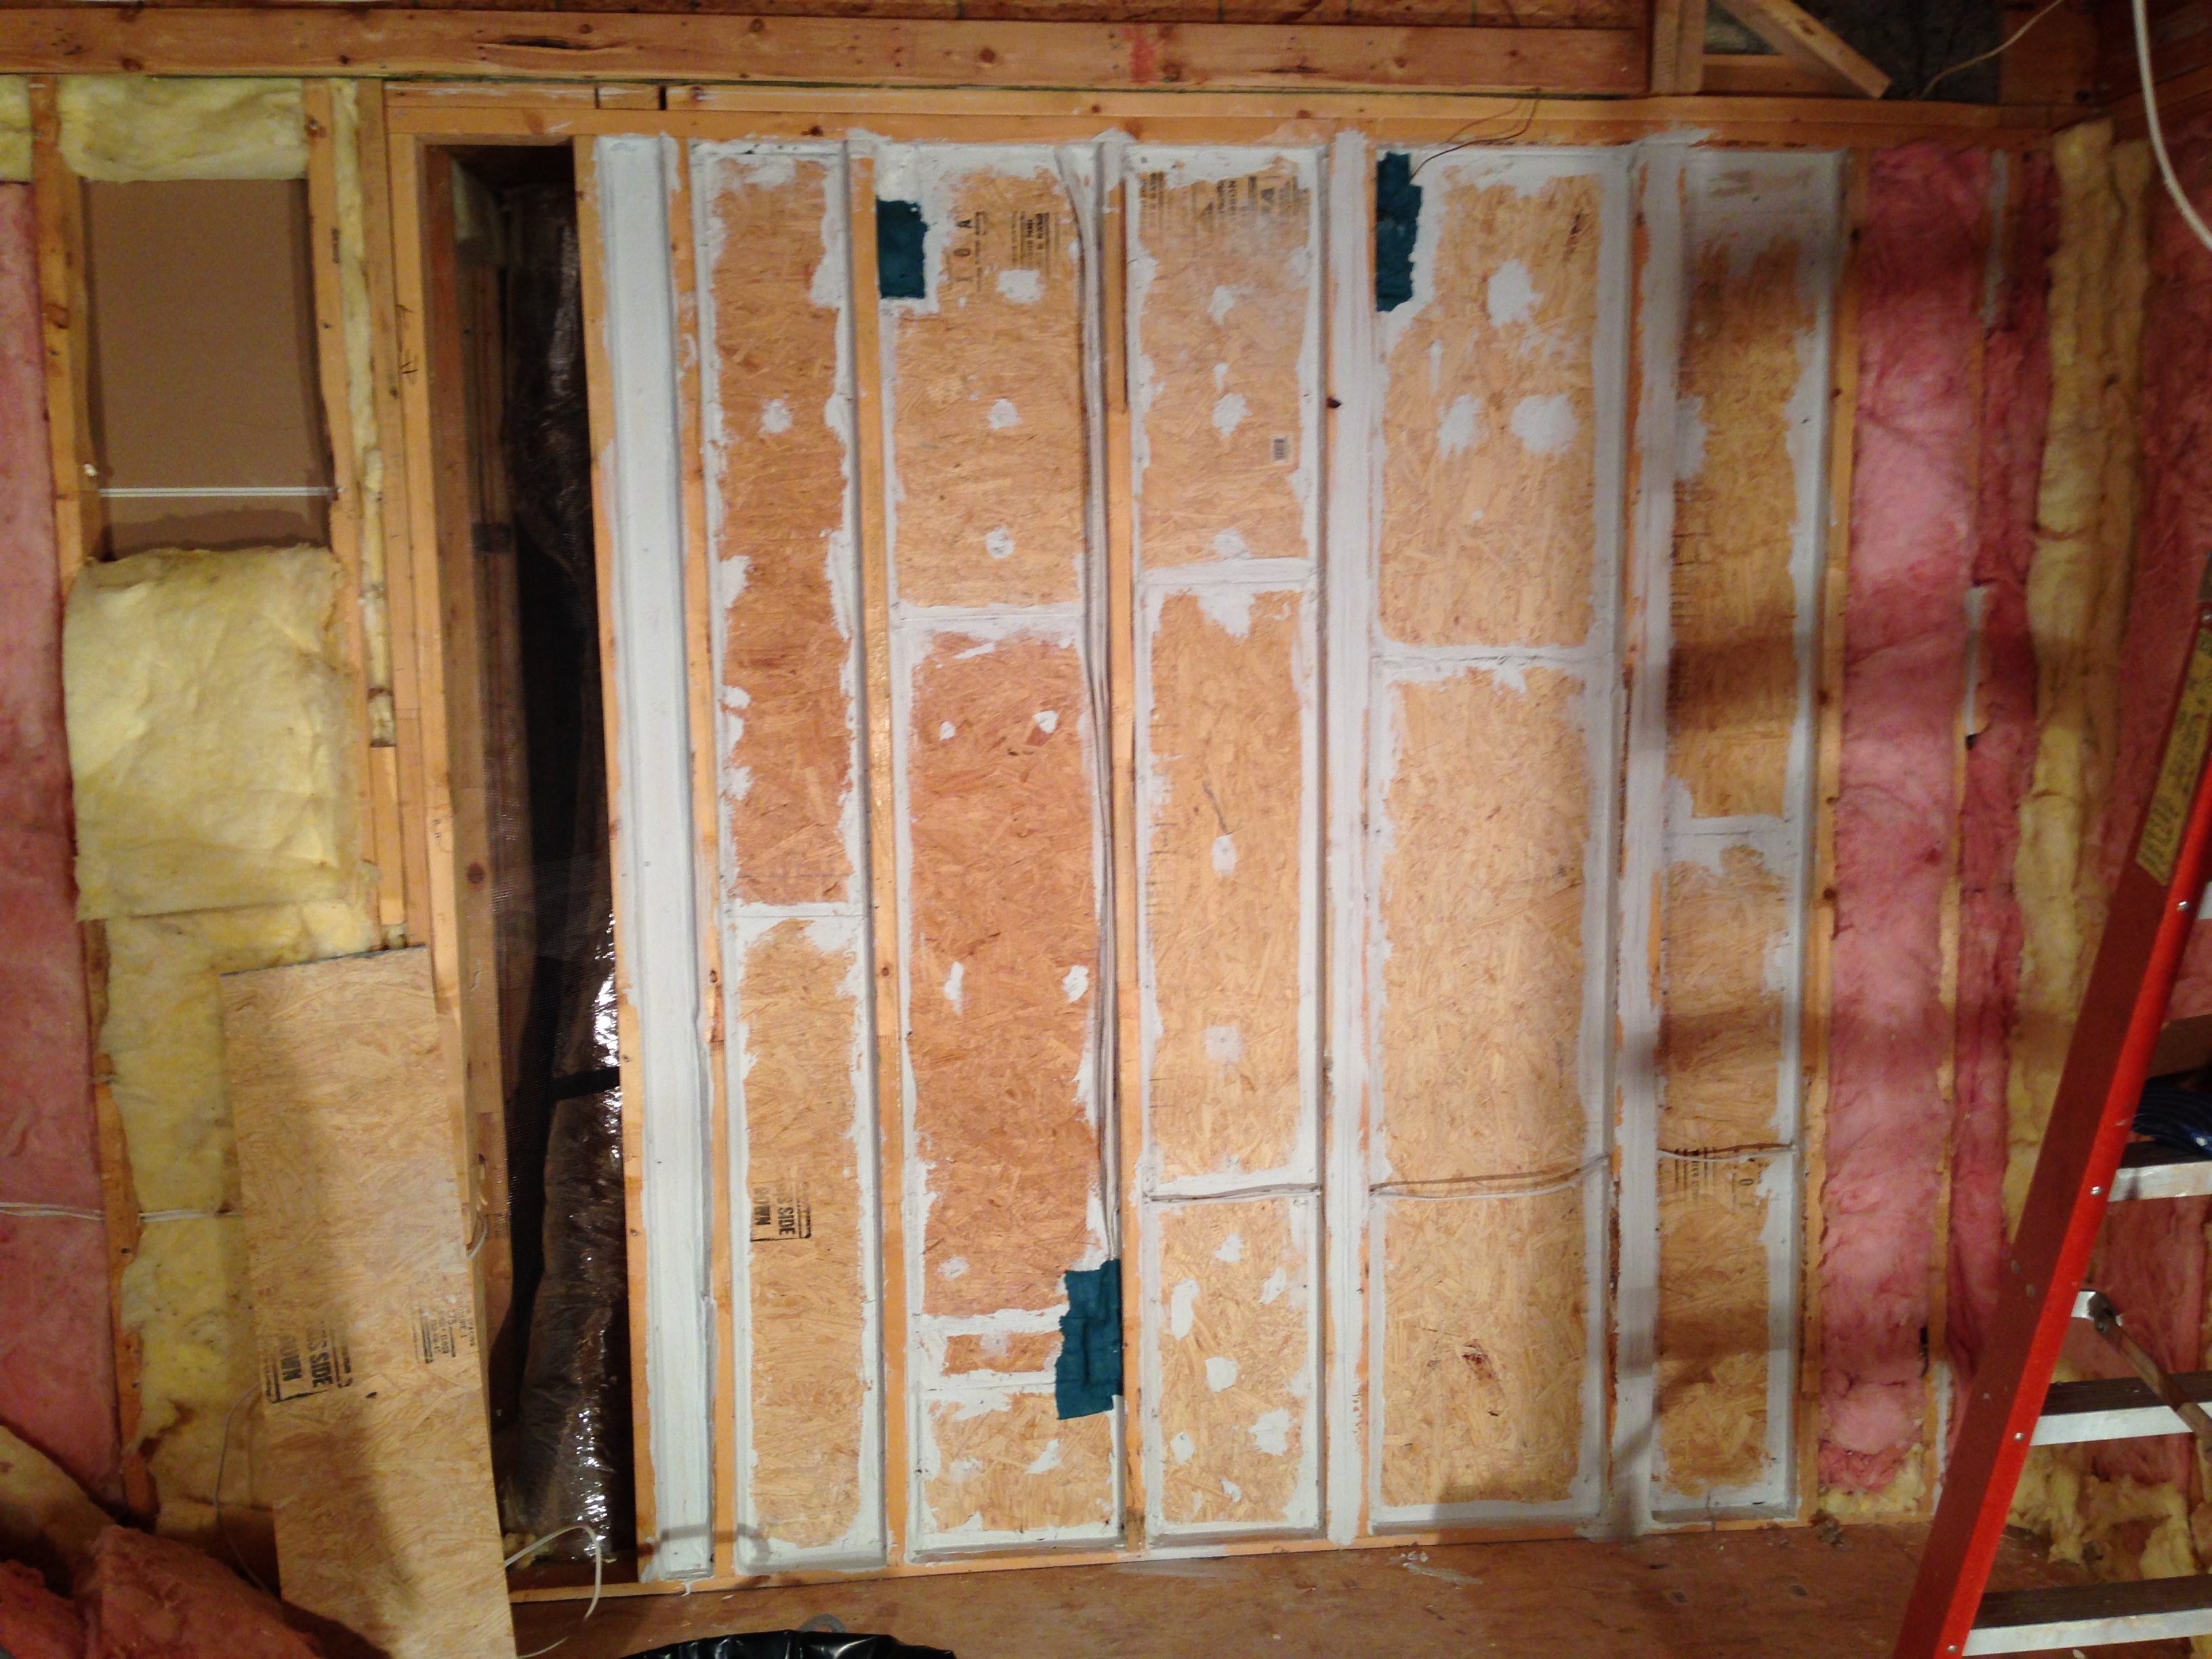 The Next Picture Shows The Installed Fiberglass Insulation